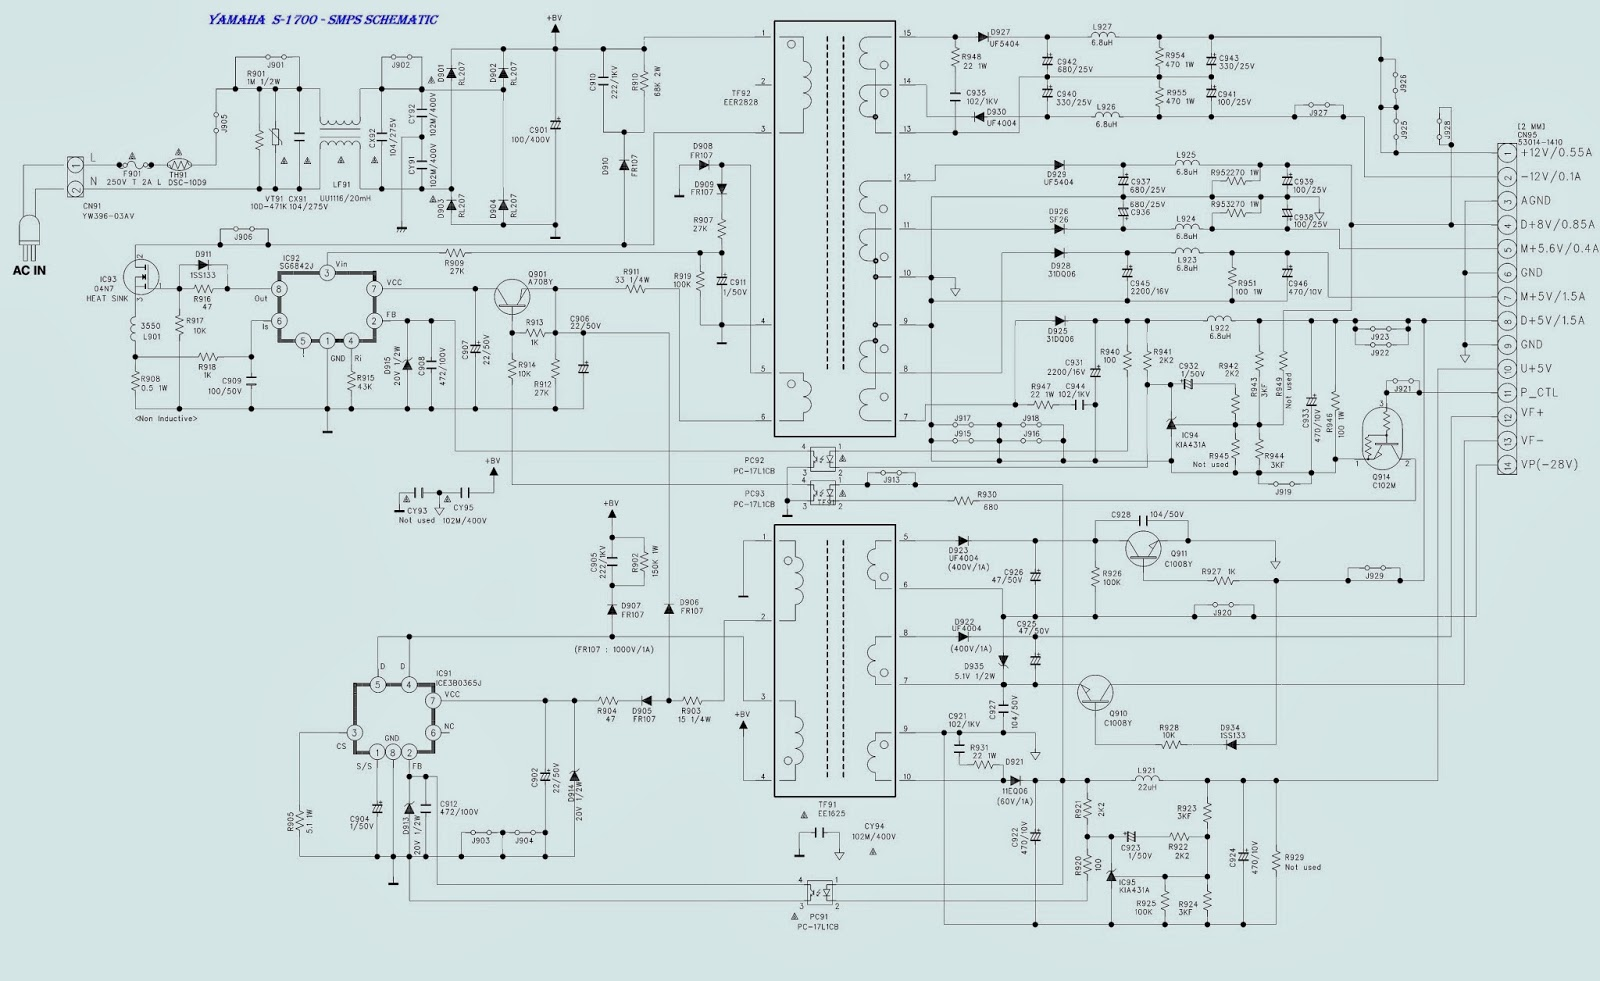 hight resolution of dvd s1700 smps power supply schematic circuit diagram dvd 6000 power supply smps schematic circuit digram electro help